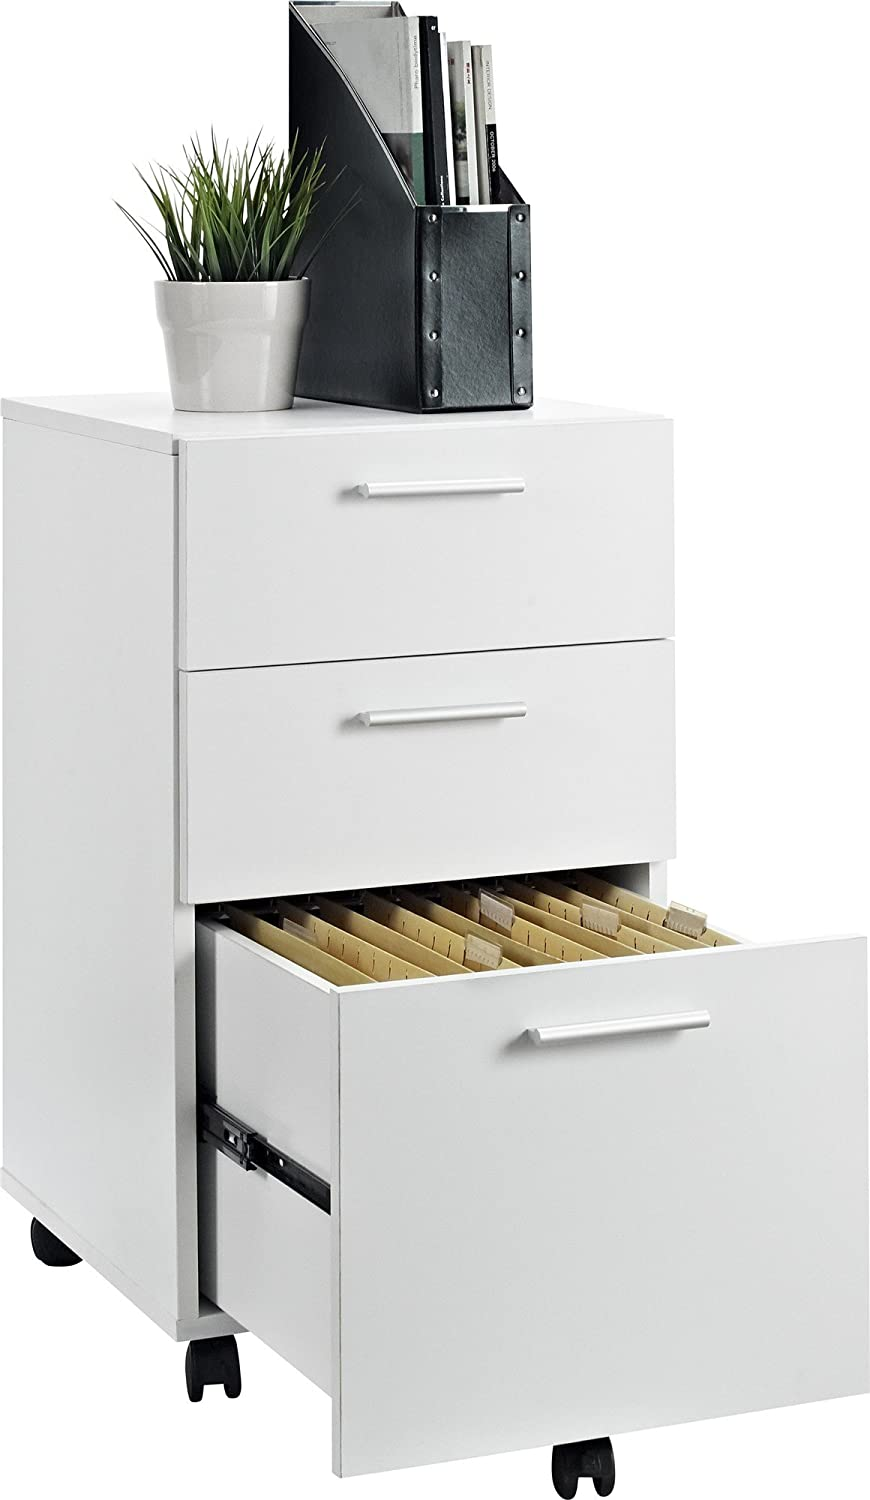 File Cabinet Amazoncom Altra Princeton Mobile File Cabinet White Kitchen